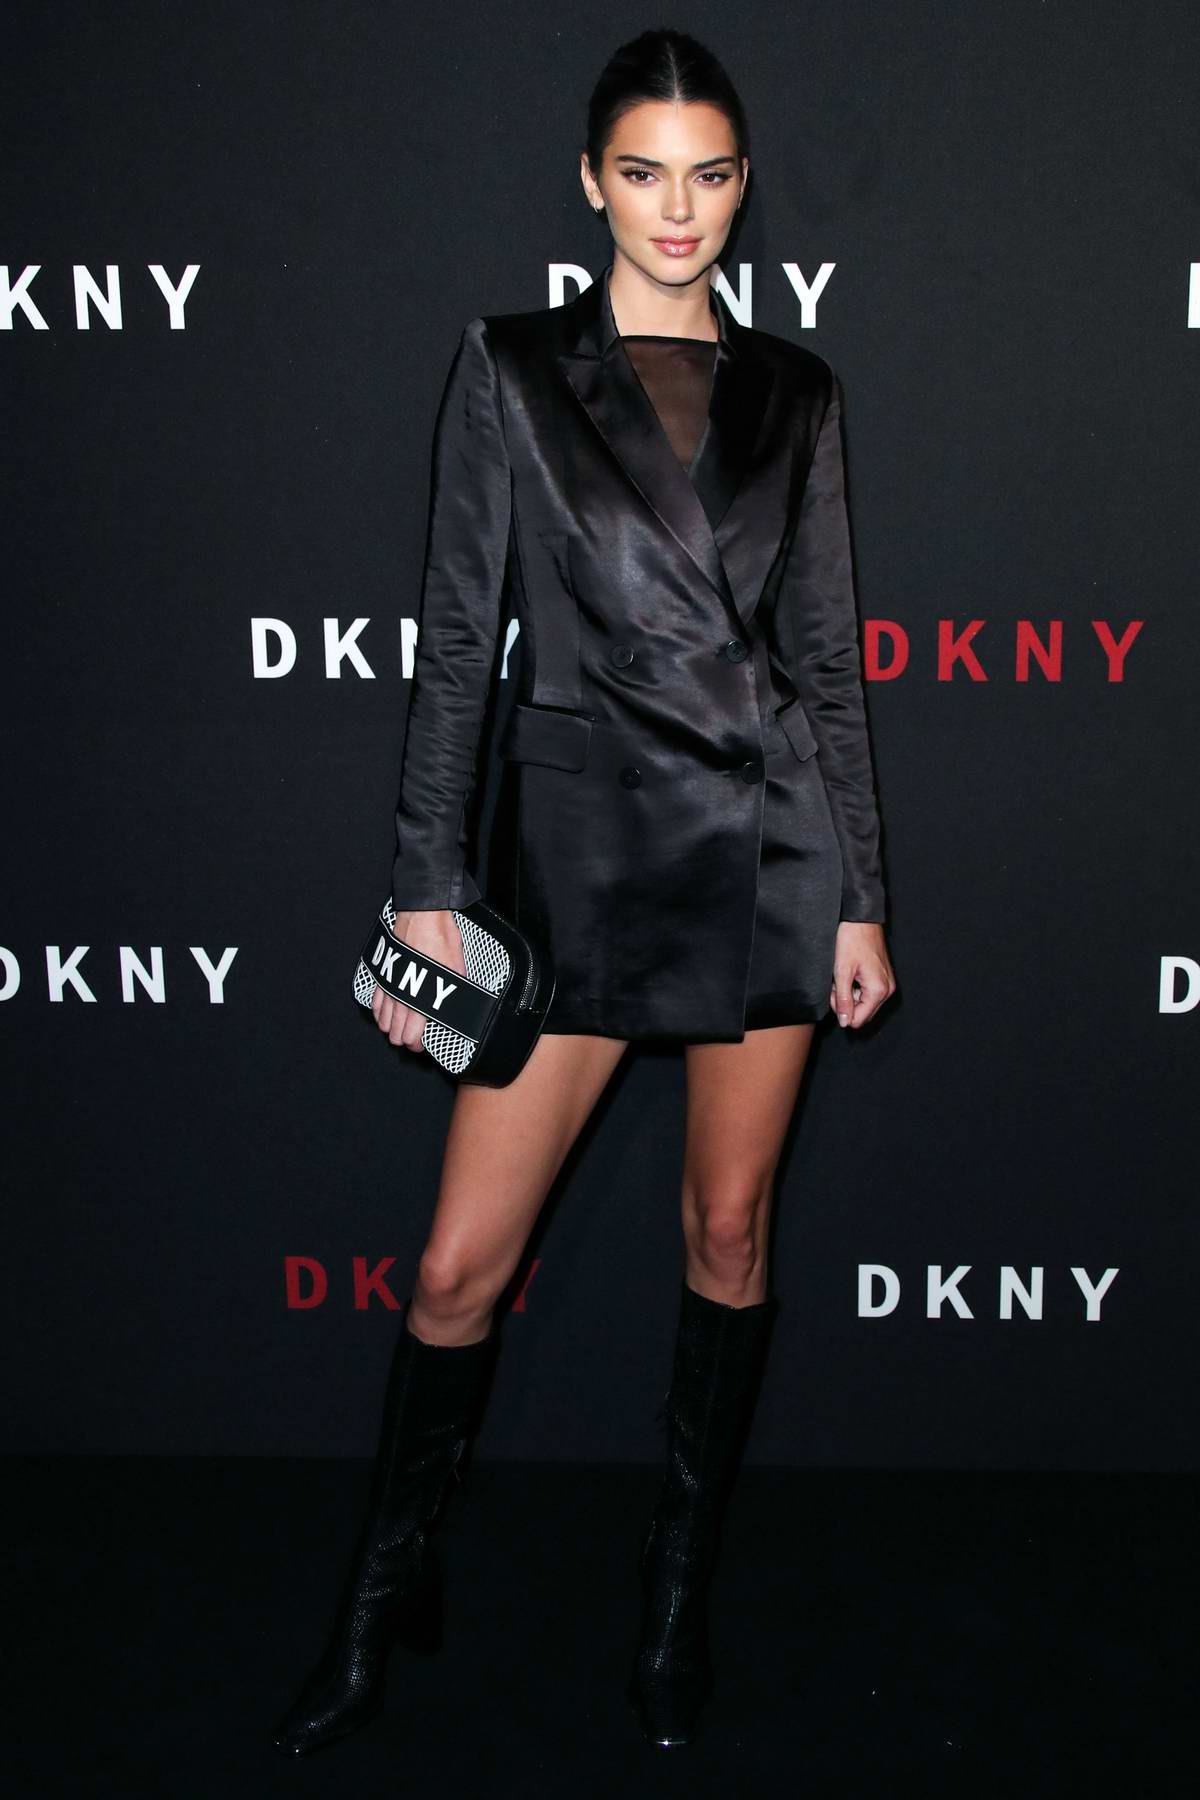 Kendall Jenner attends DKNY 30th birthday party during New York Fashion Week in New York City